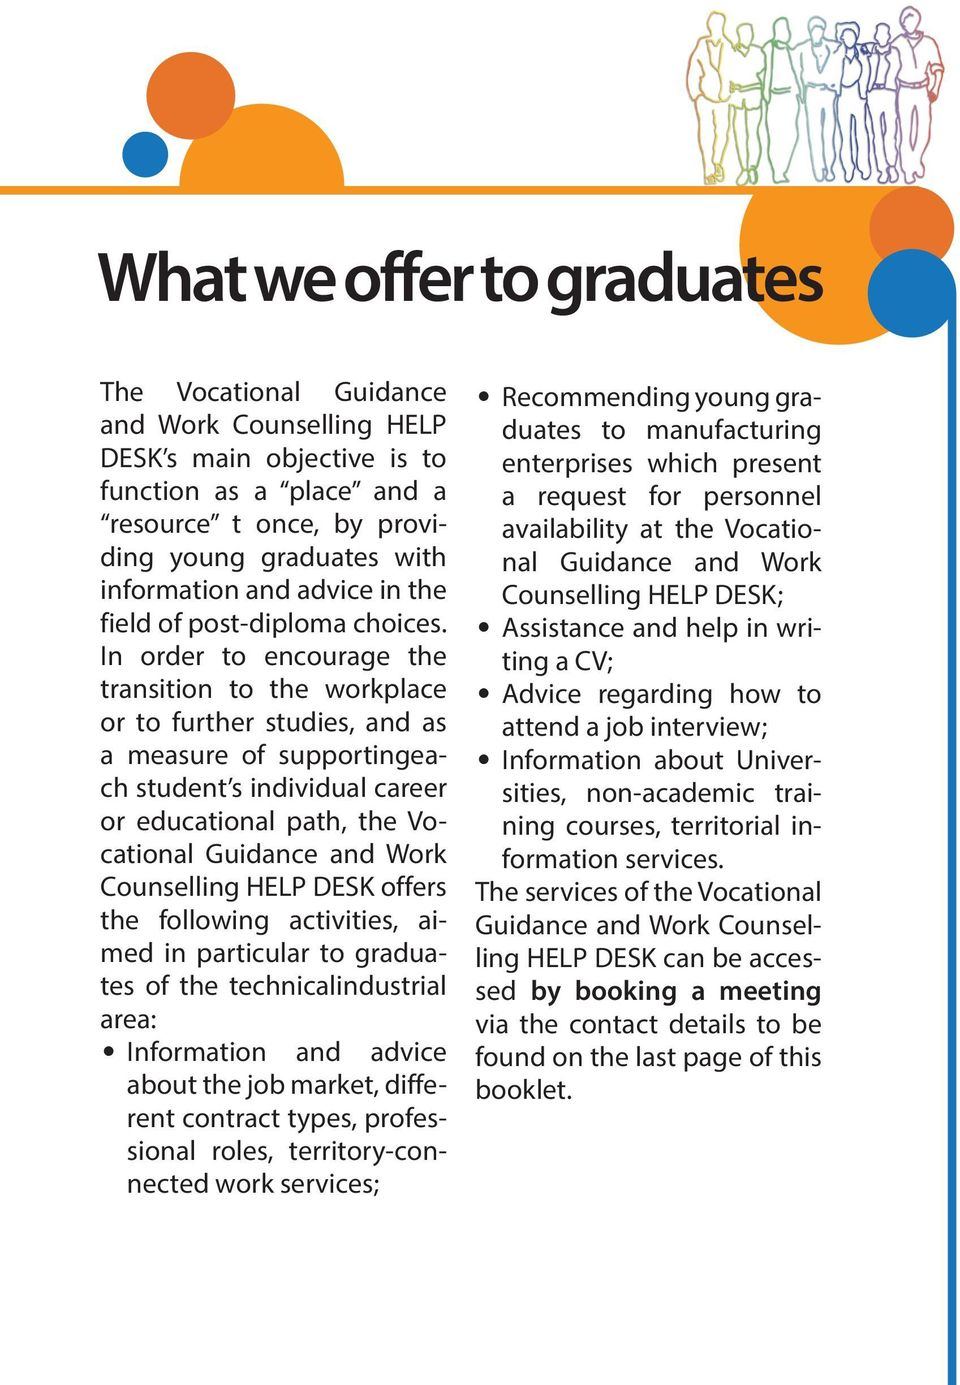 In order to encourage the transition to the workplace or to further studies, and as a measure of supportingeach student s individual career or educational path, the Vocational Guidance and Work